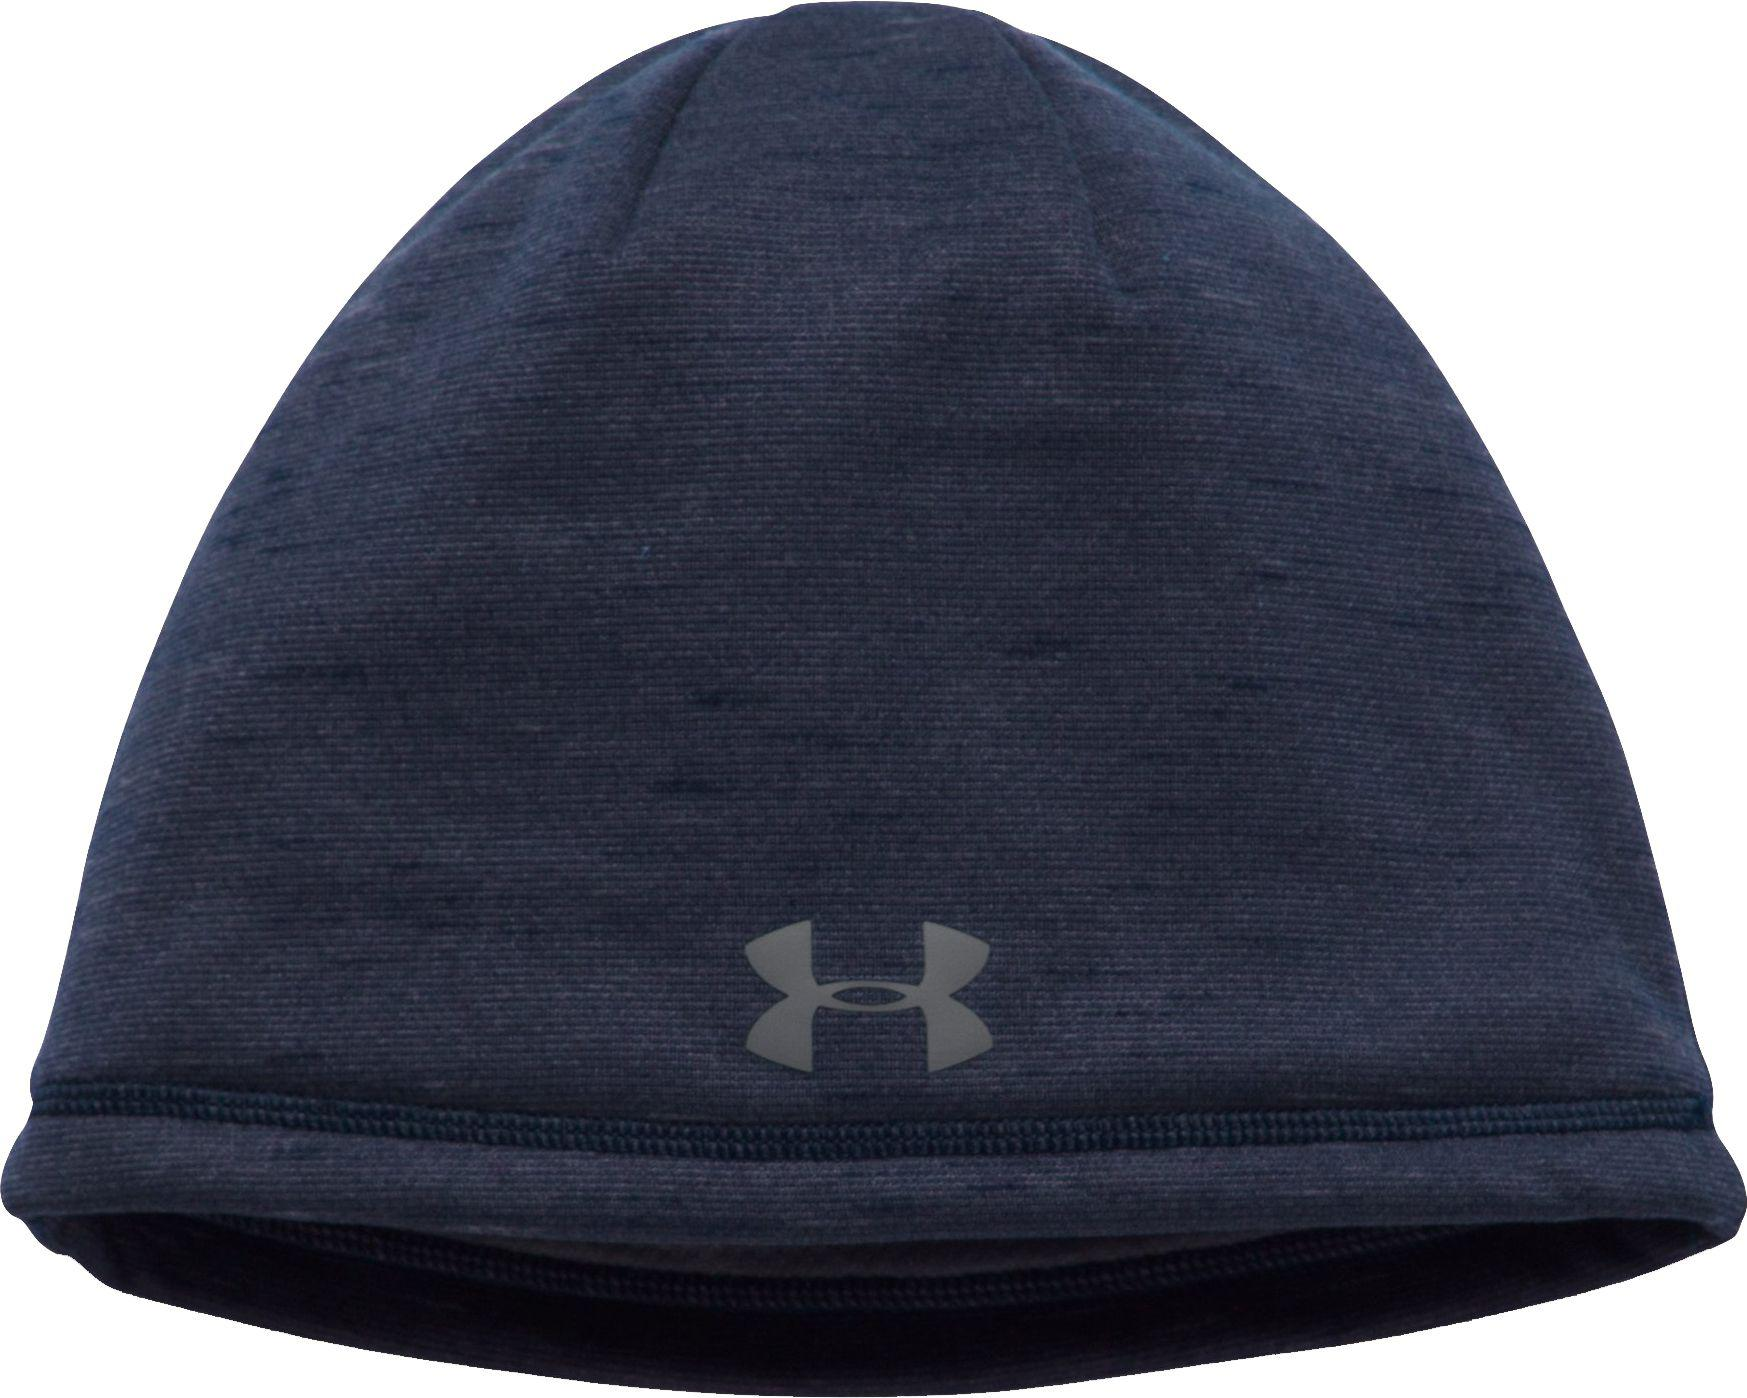 997e52b7f1d Lyst - Under Armour Coldgear Reactor Elements Beanie in Blue for Men